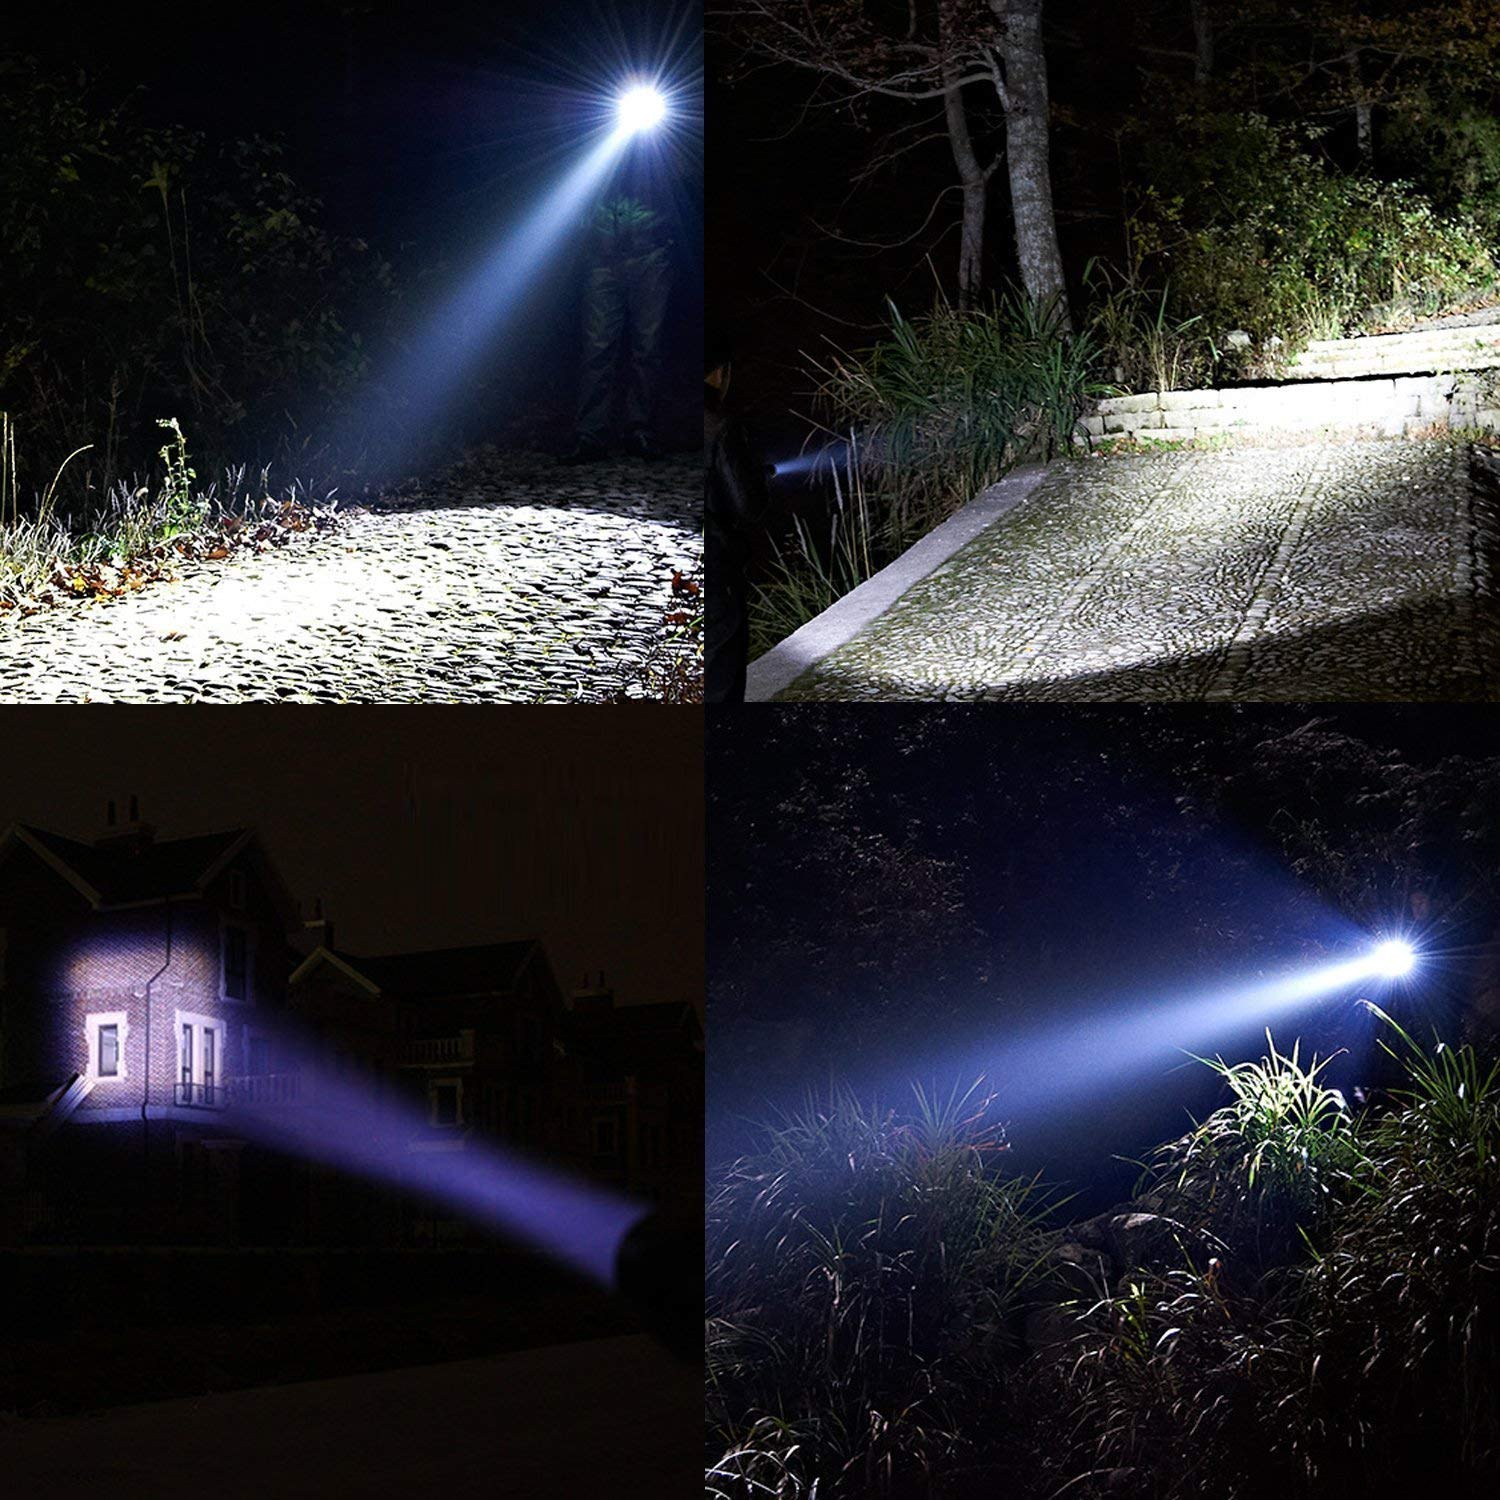 3 Pack TC1200 Flashlight Military Grade Tactical Waterproof Led Flashlights As Seen on TV XML T6 Taclight with Adjustable Focus and 5 Light Modes for Camping Hiking Emergency Hurricane Gift-giving